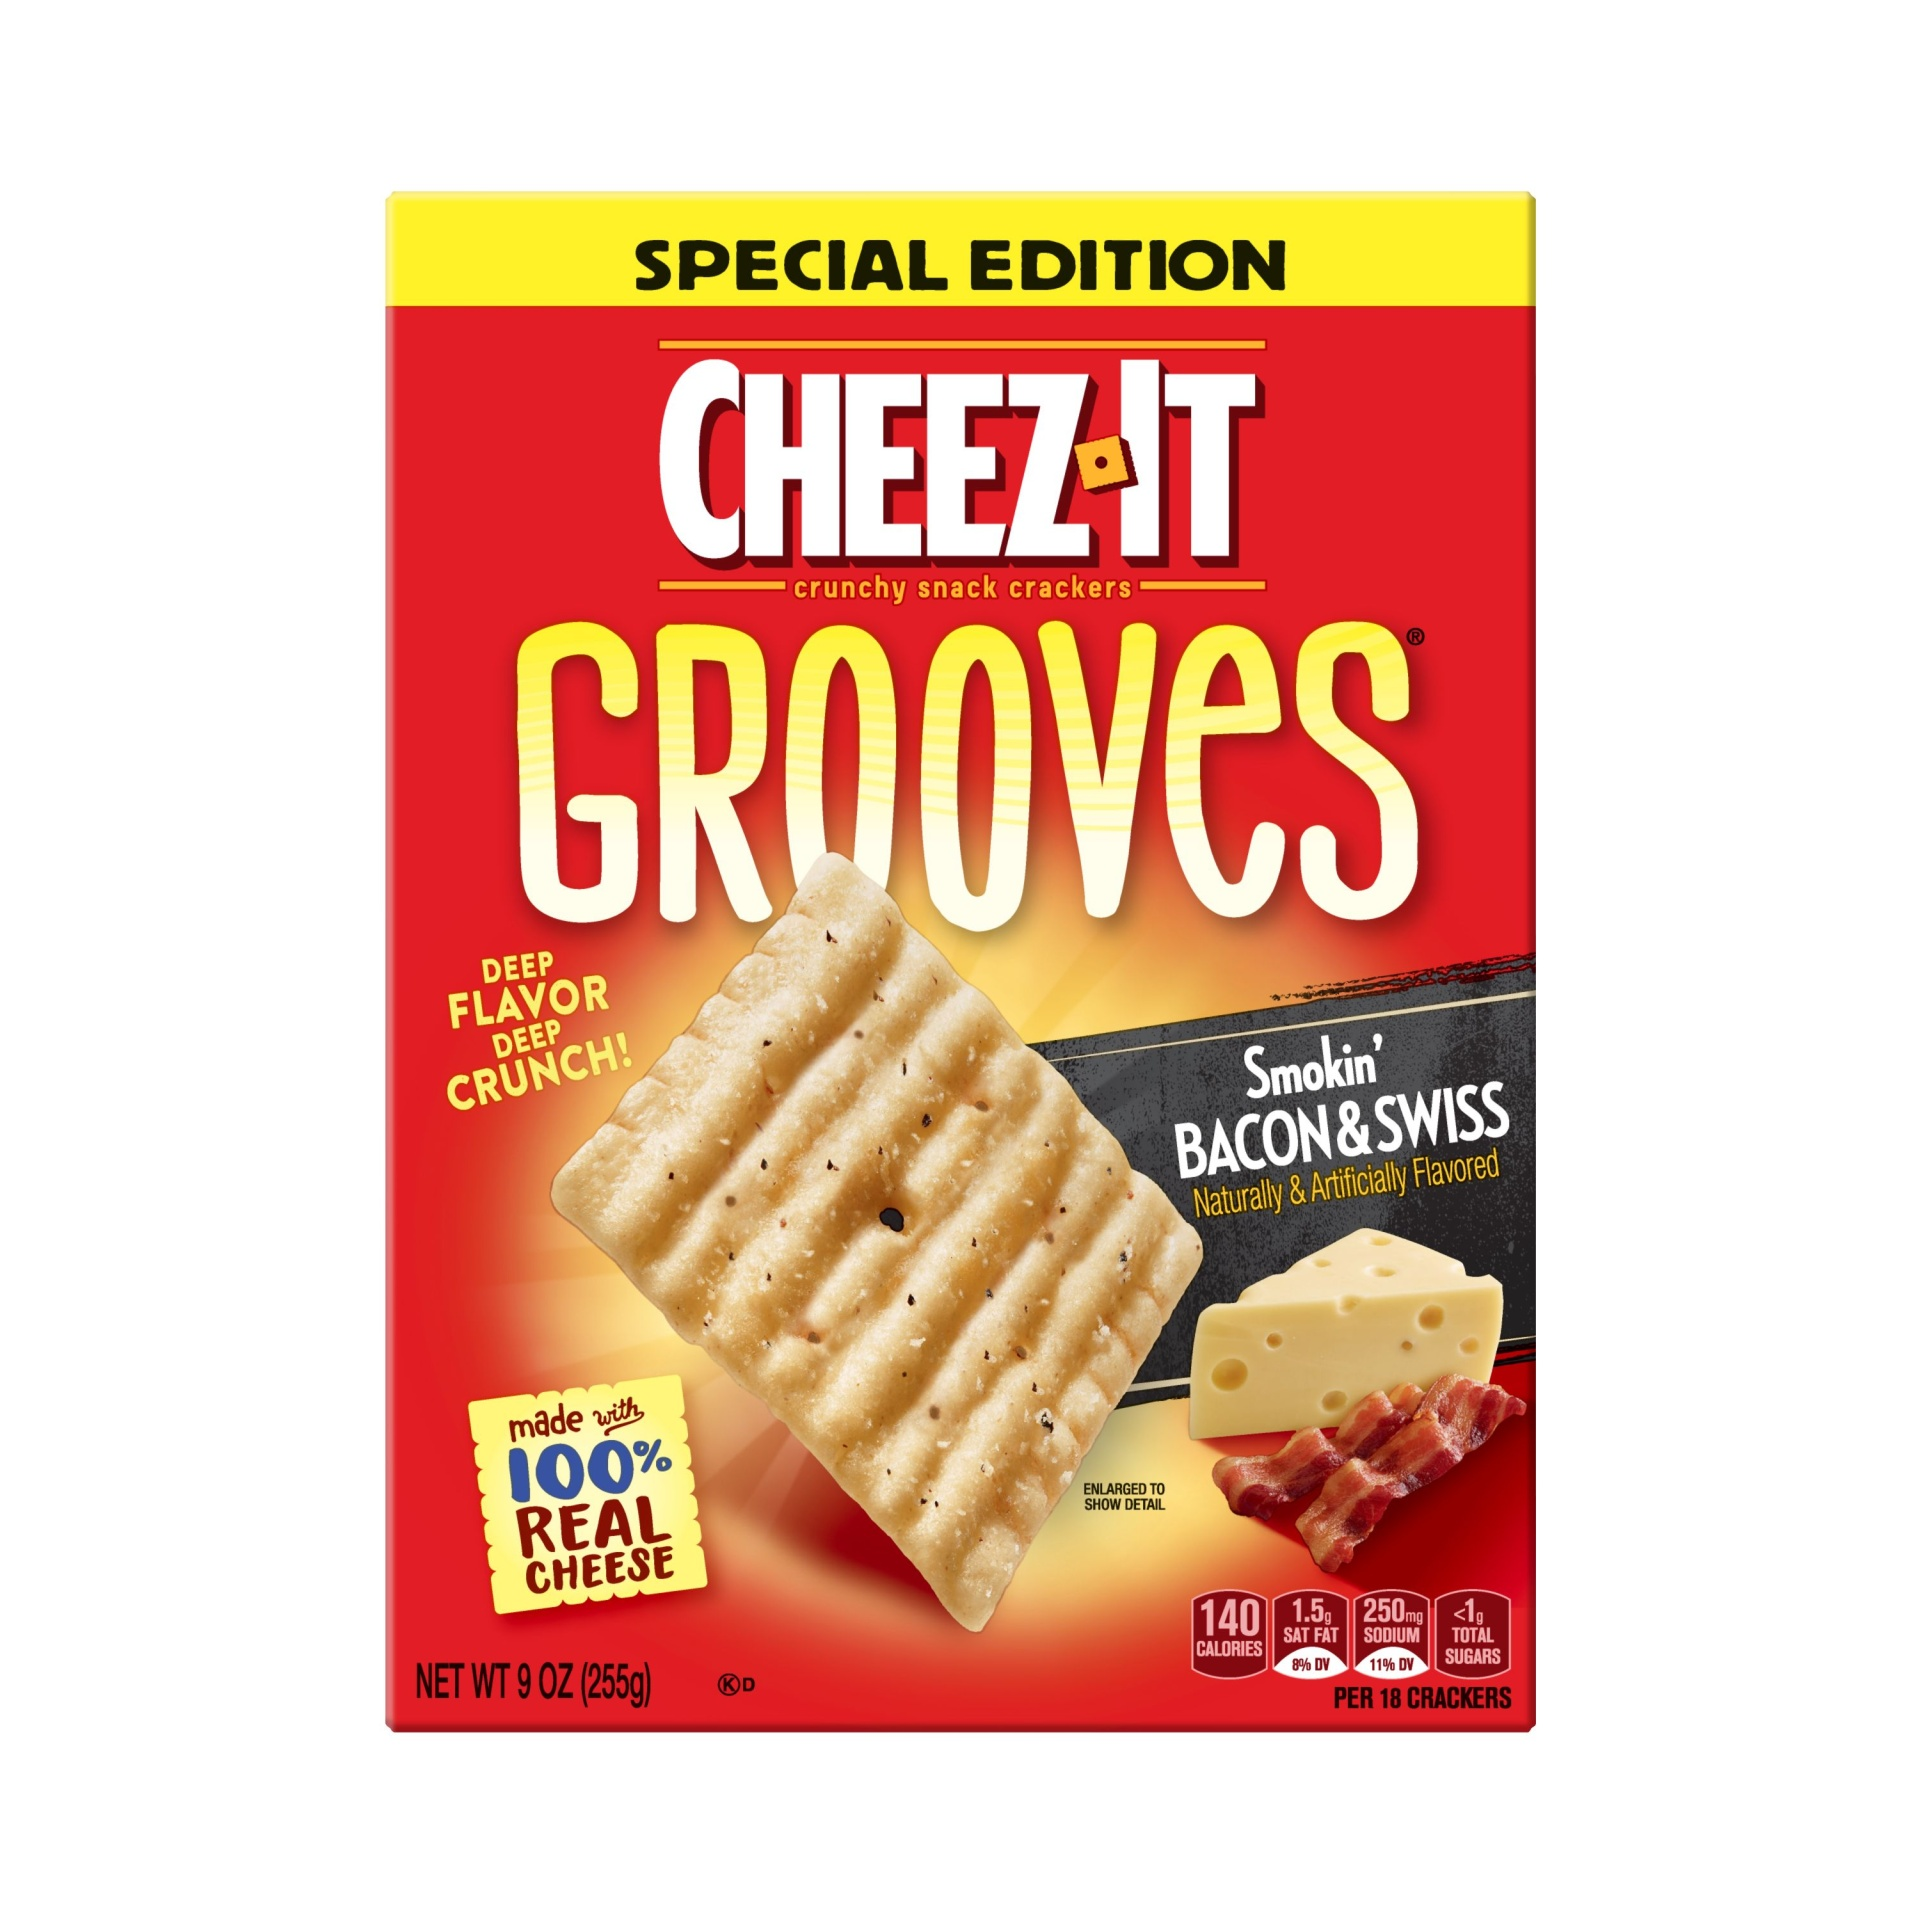 slide 2 of 4, Cheez-It Crunchy Cheese Snack Crackers Smokin' Bacon and Swiss Special Edition,